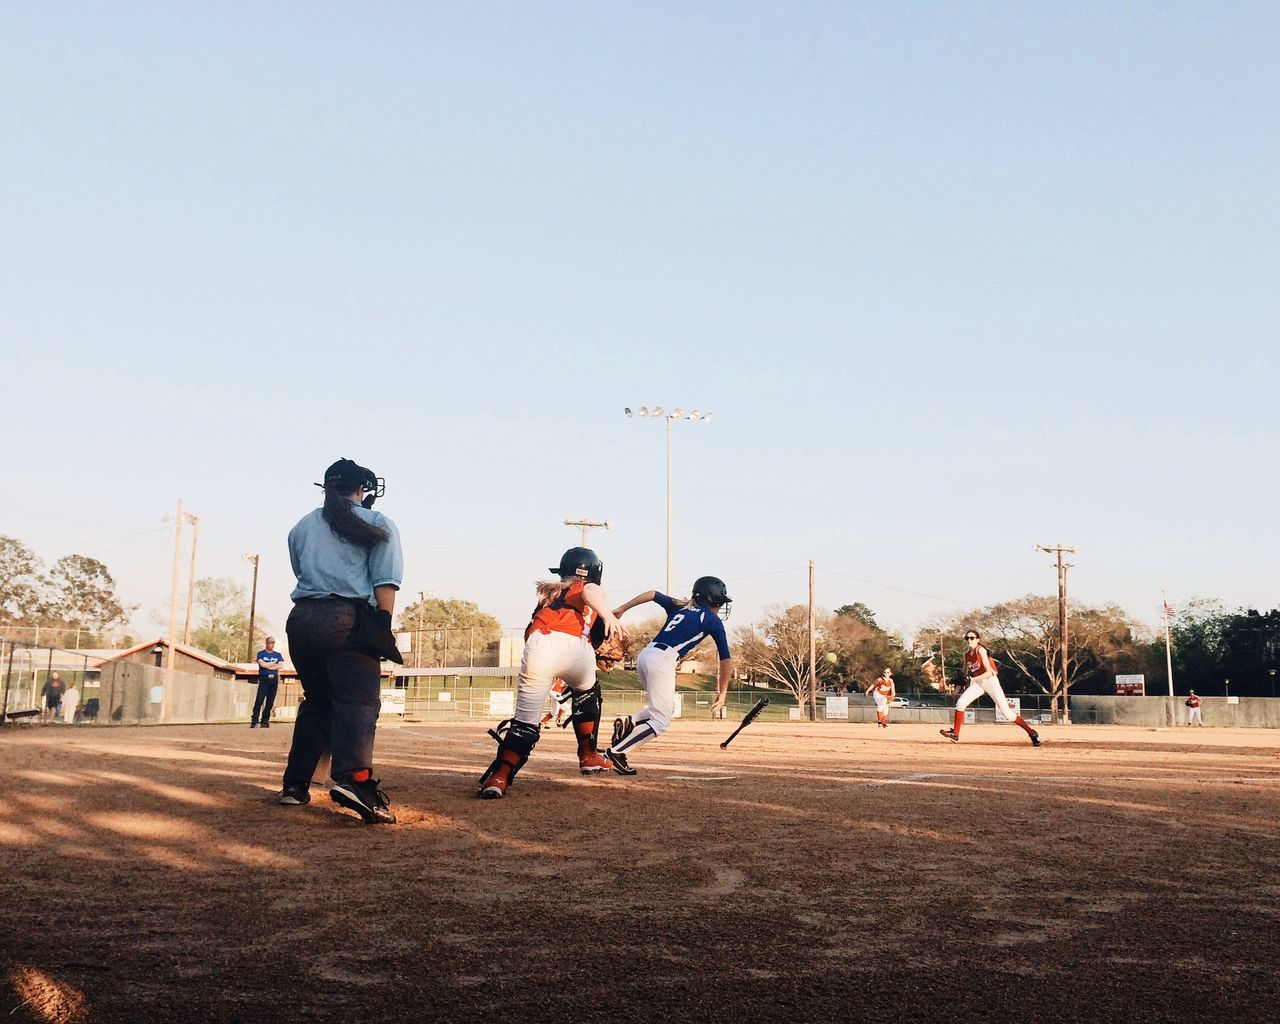 Children playing baseball against clear sky